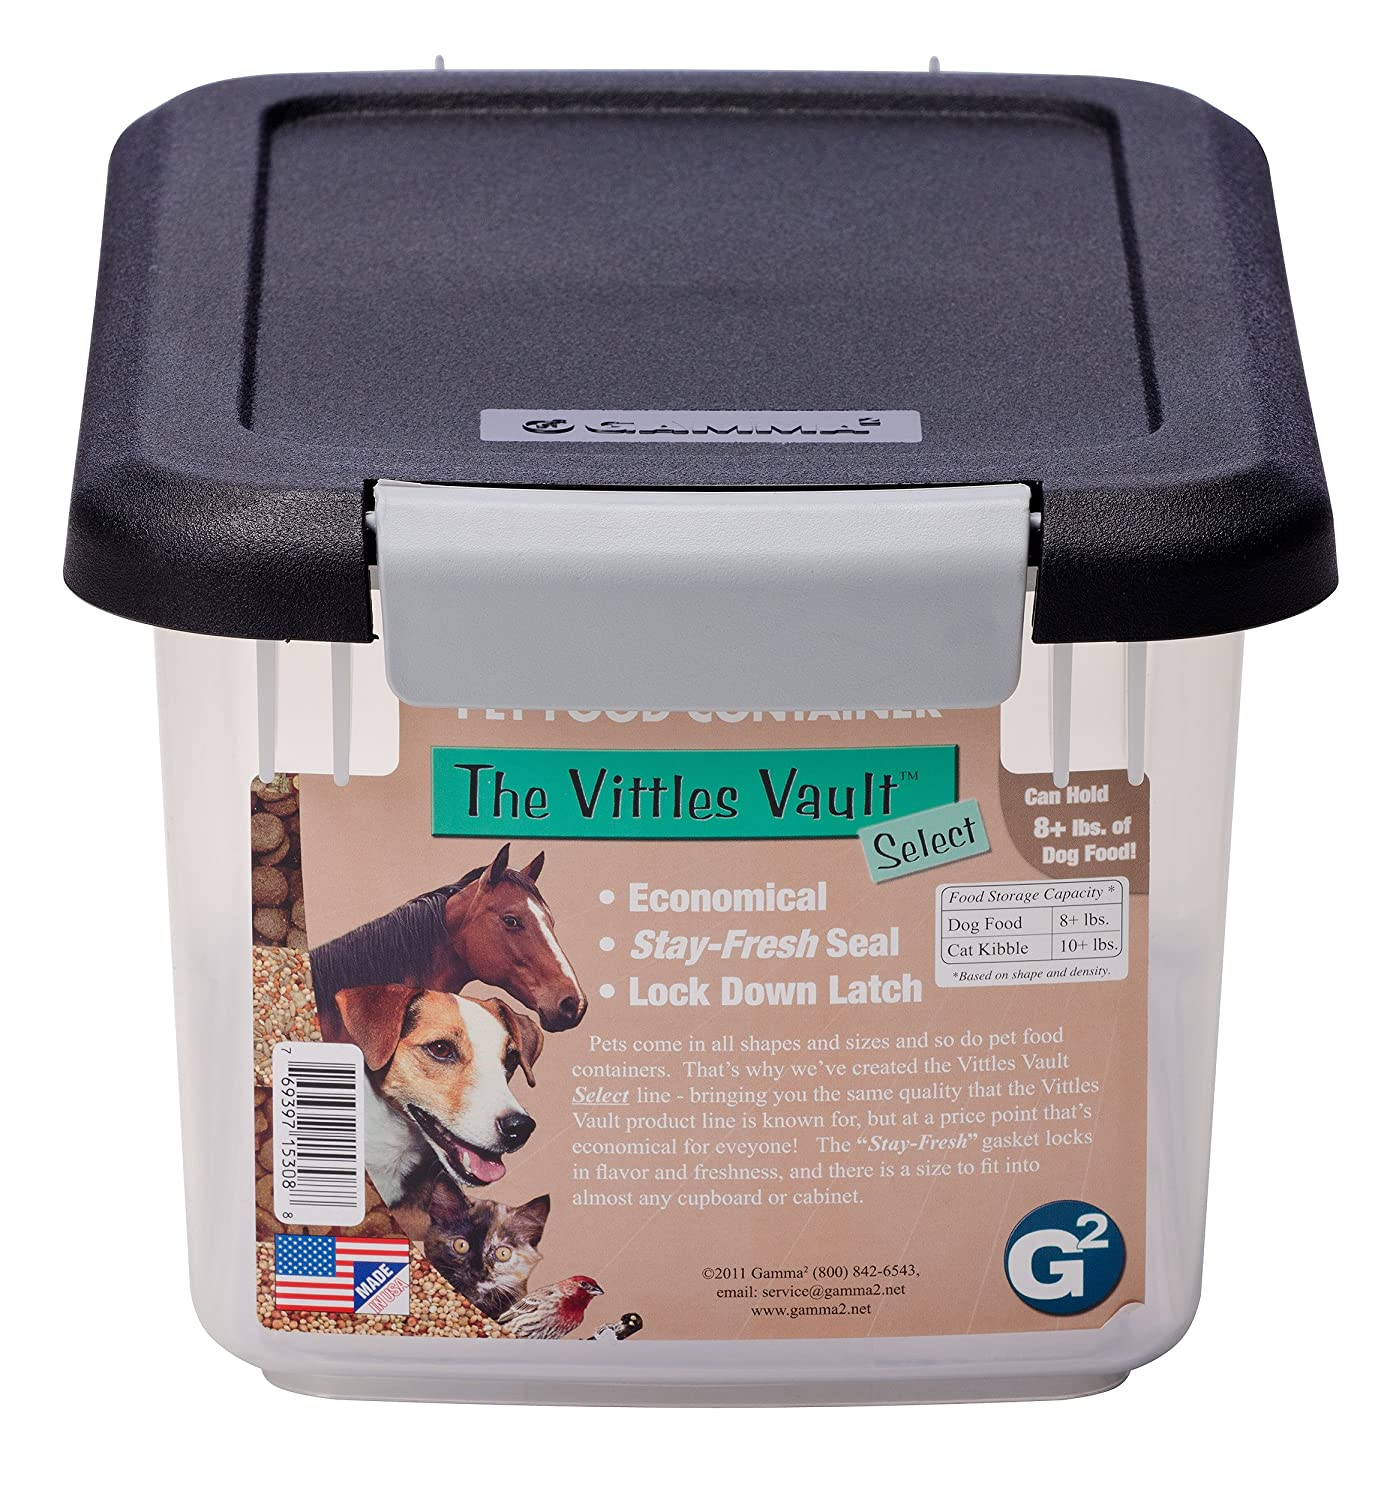 amazoncom gamma2 vittles vault 8 lb pet food container pet food storage products pet supplies